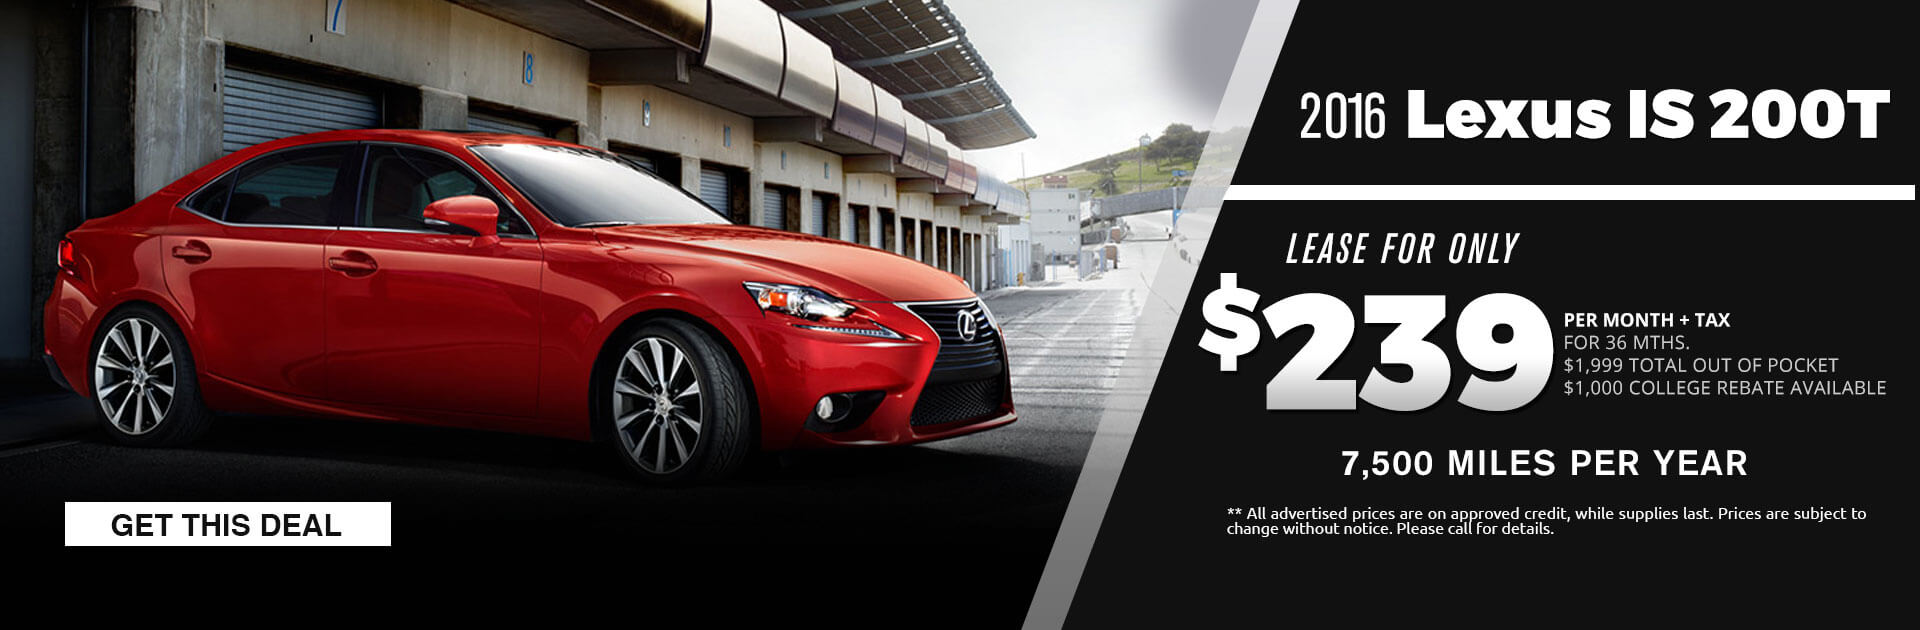 2016 Lexus IS200 Lease